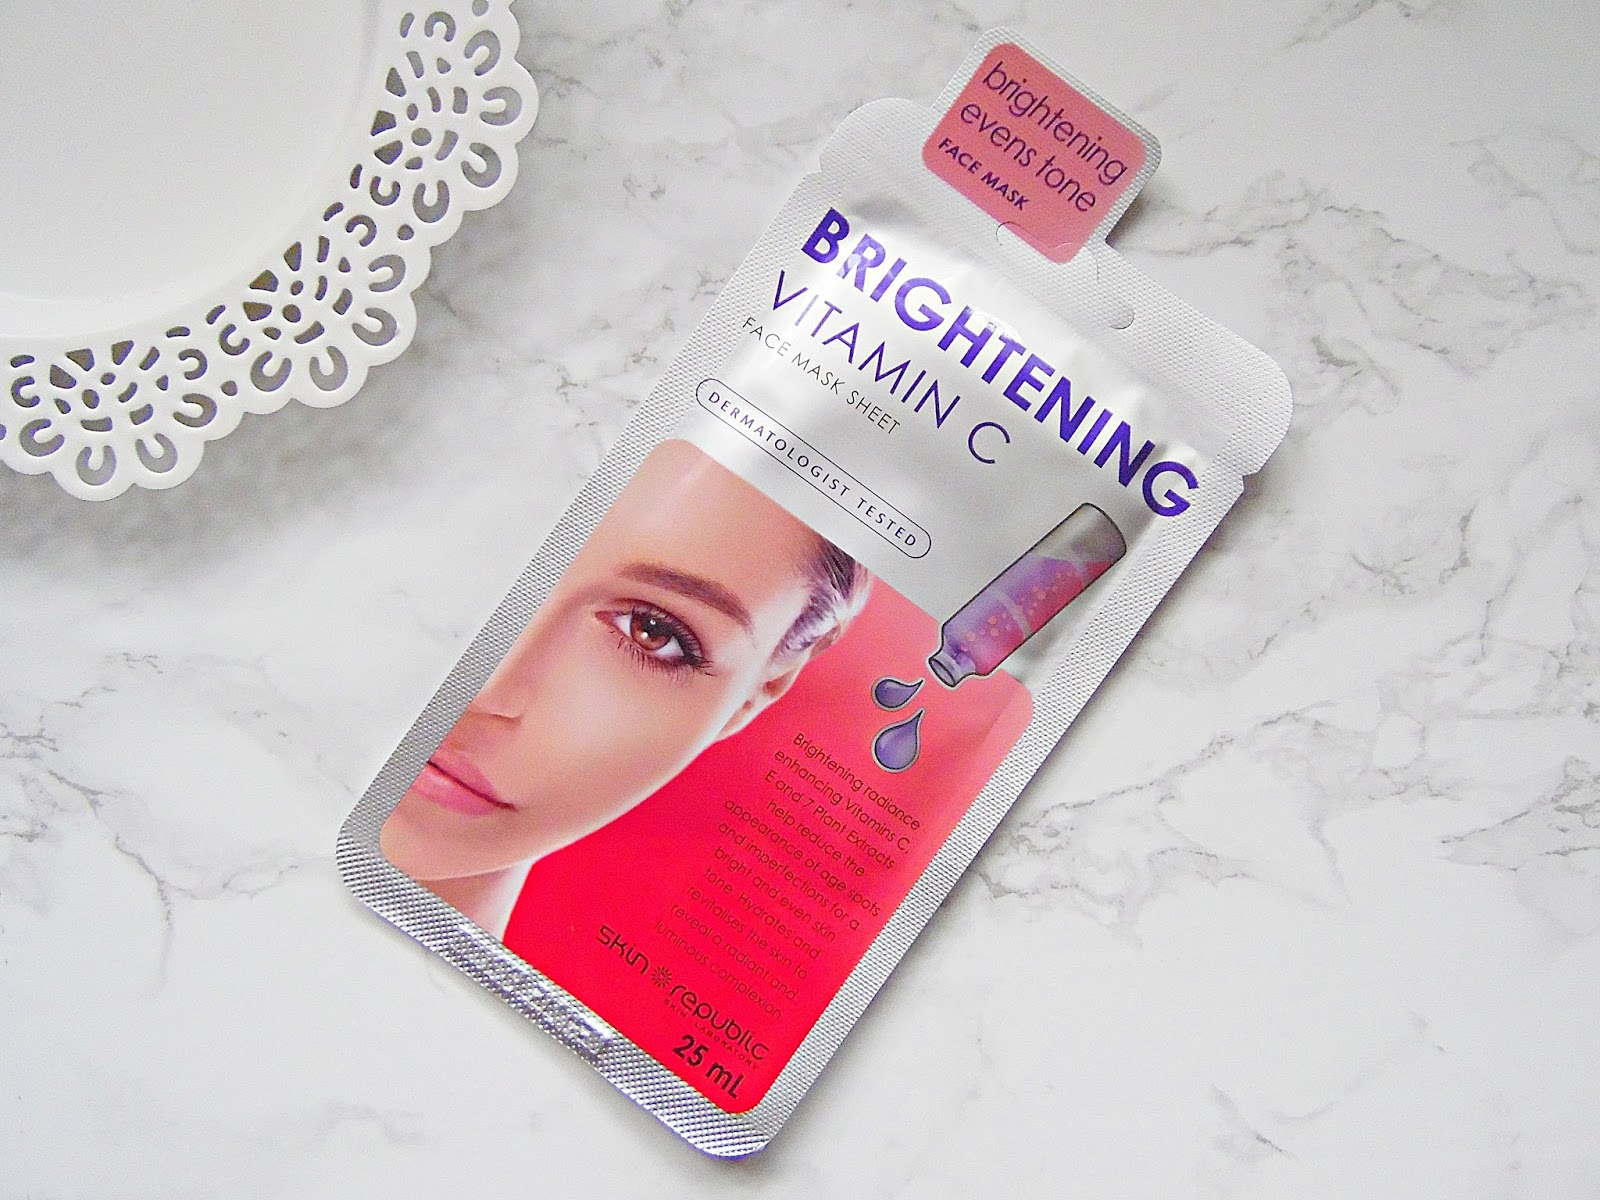 Skin Republic Brightening Sheet Mask